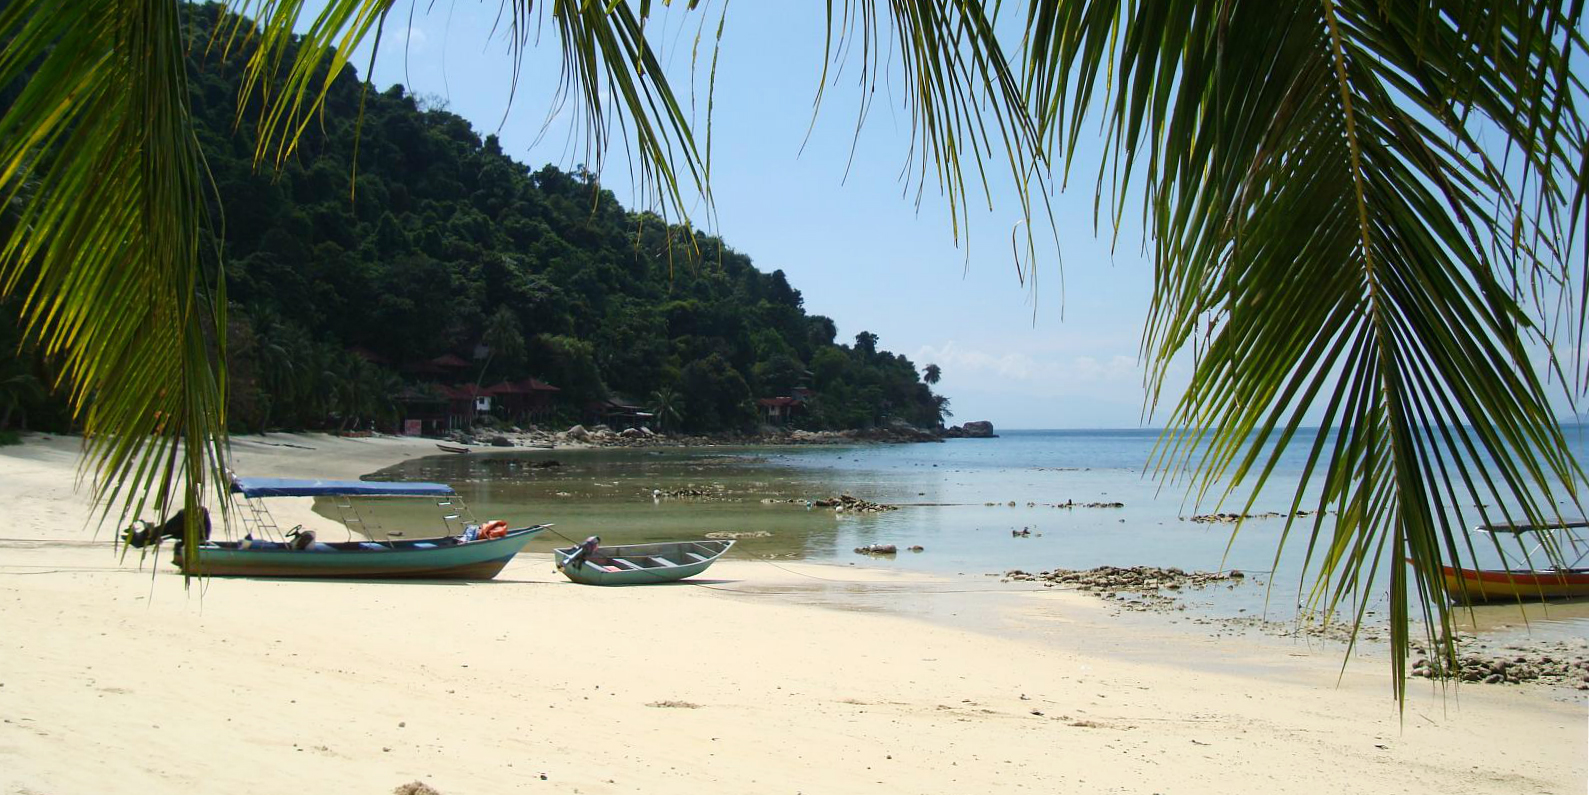 An idyllic scene of a wooden fishing boat on a Perhentian Island beach.